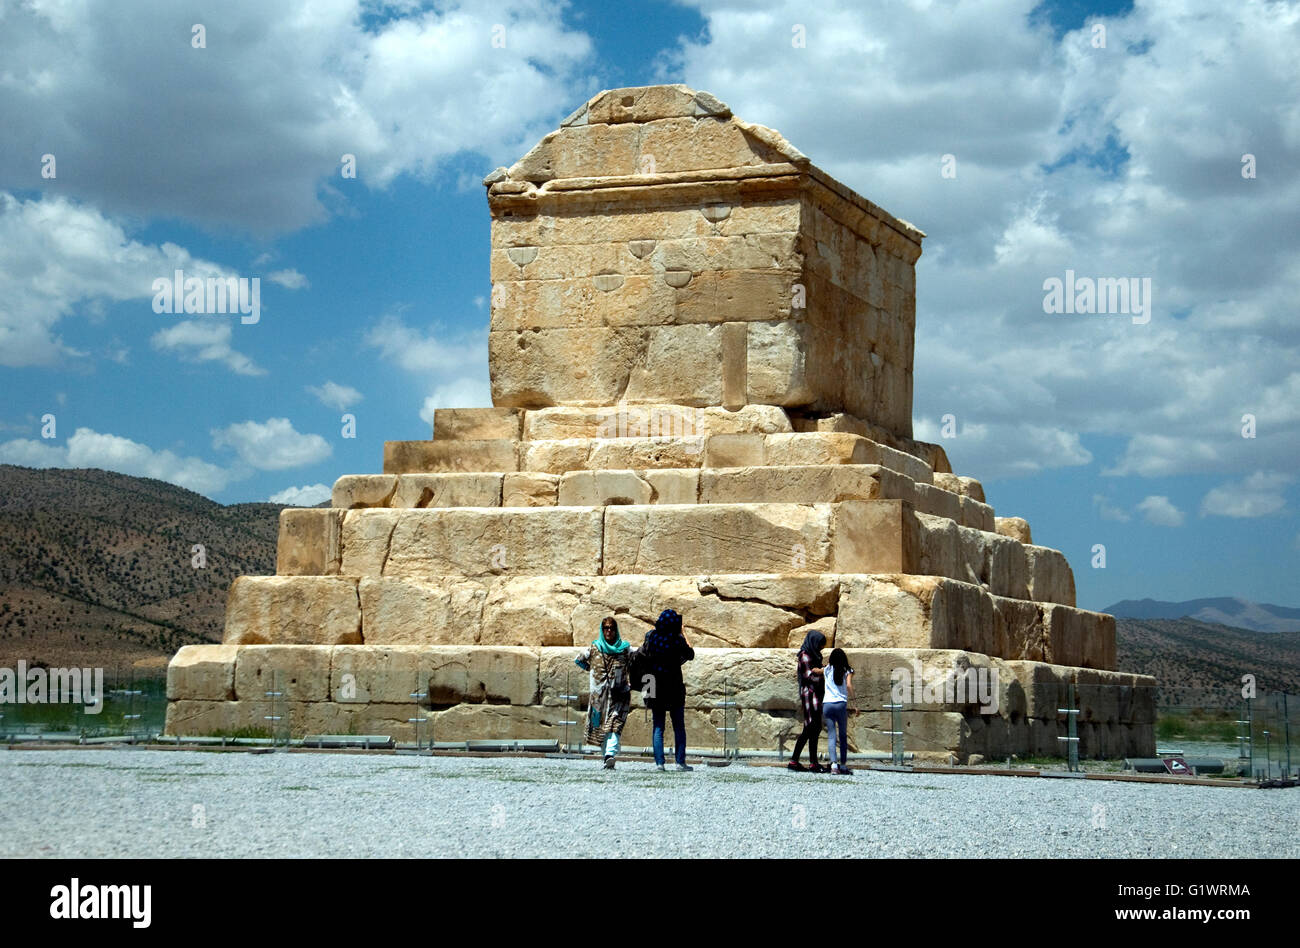 The tomb of Cyrus the Great, died 529 BCE, at Pasargadae in Iran - Stock Image